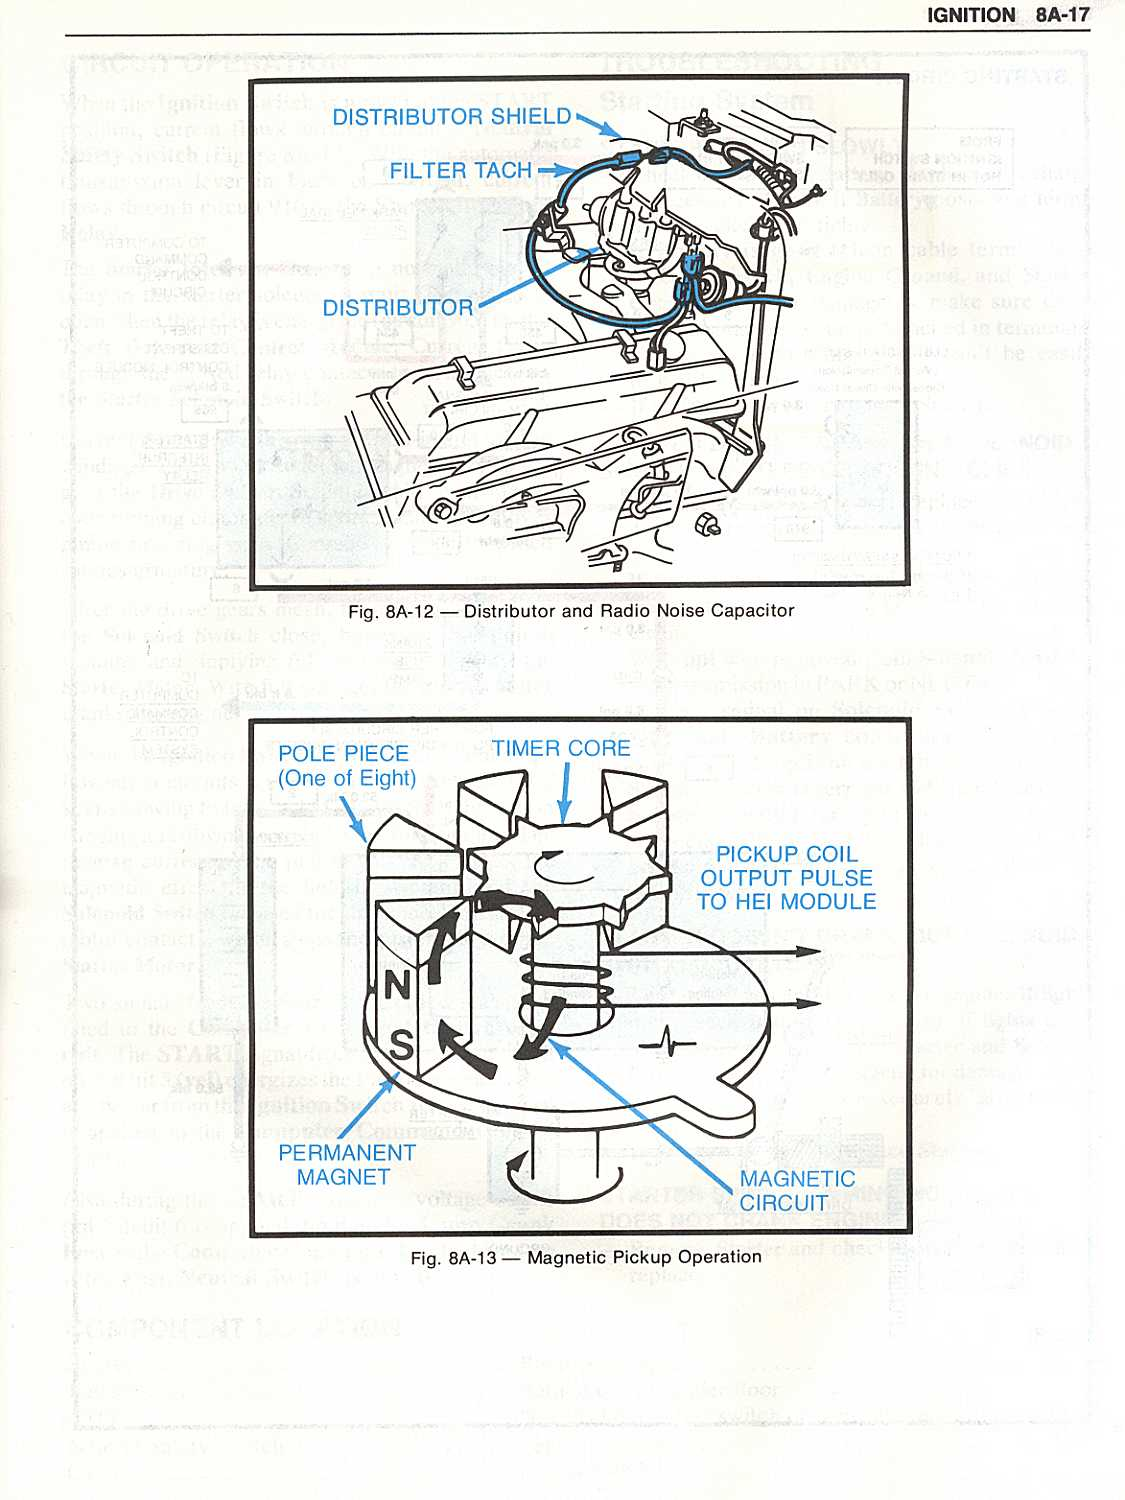 Vette 82 Body And Chassis Electrical Troubleshooting